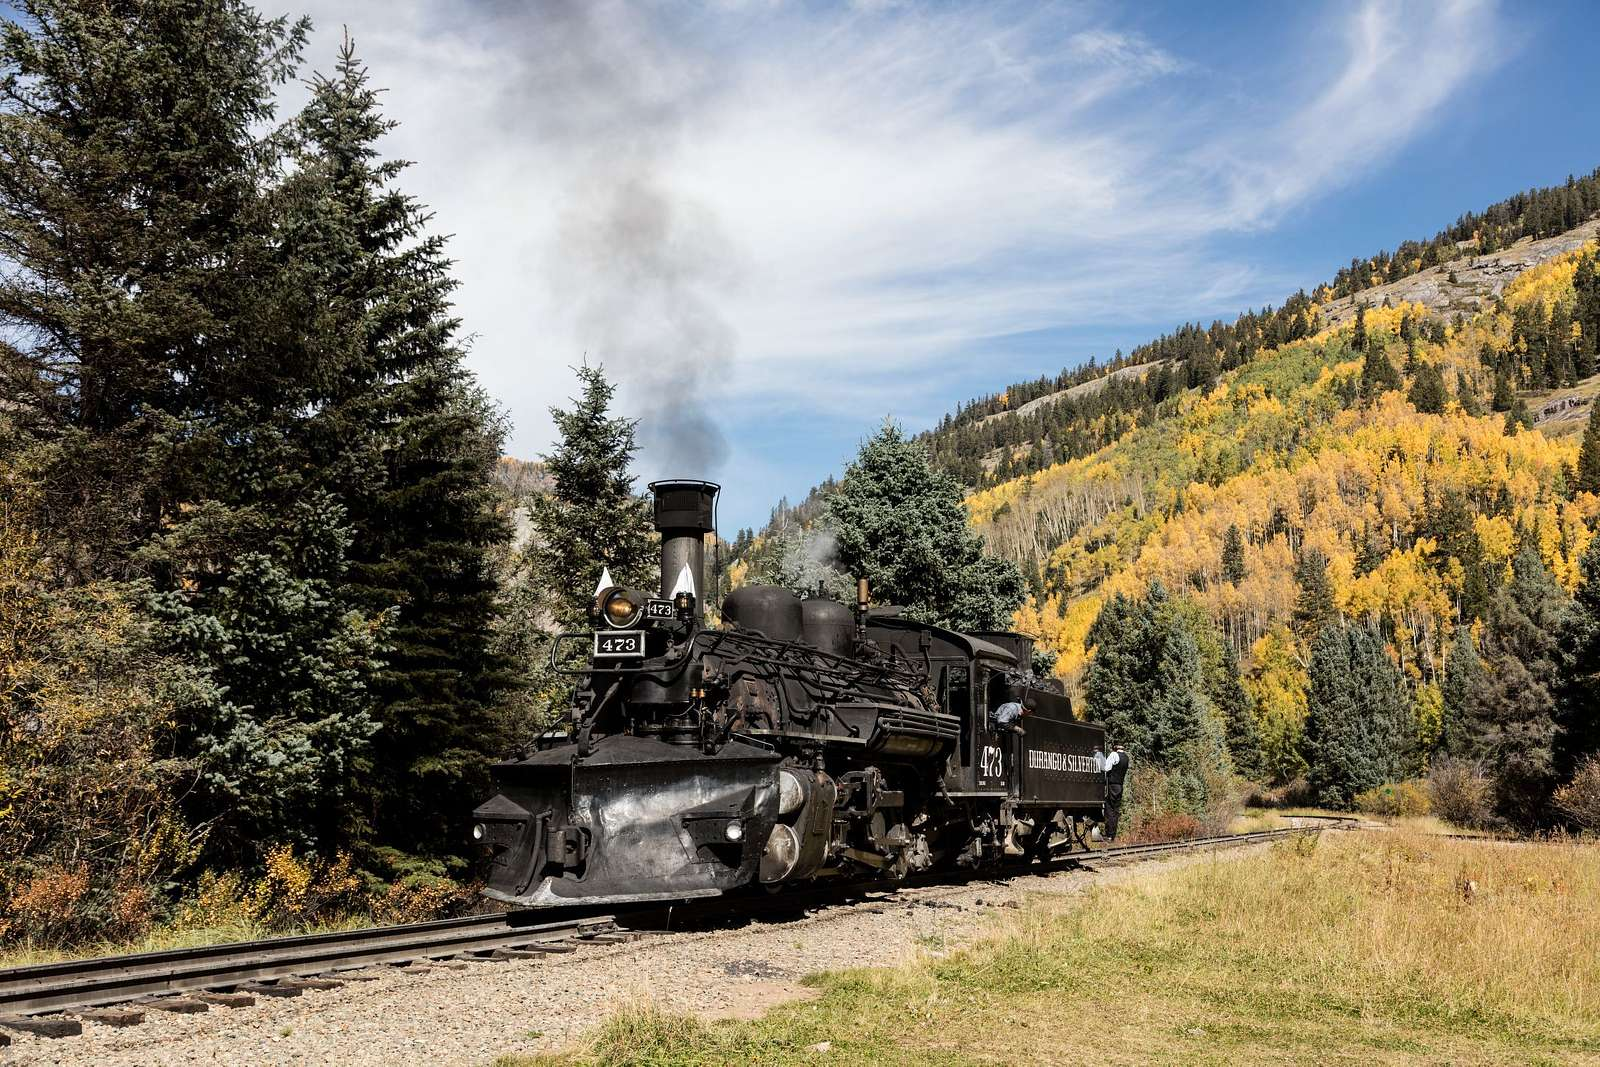 A Durango & Silverton Narrow-Gauge Scenic Railroad train, pulled by a vintage steam locomotive, chugs through the San Juan Mountains in the Colorado county of the same name